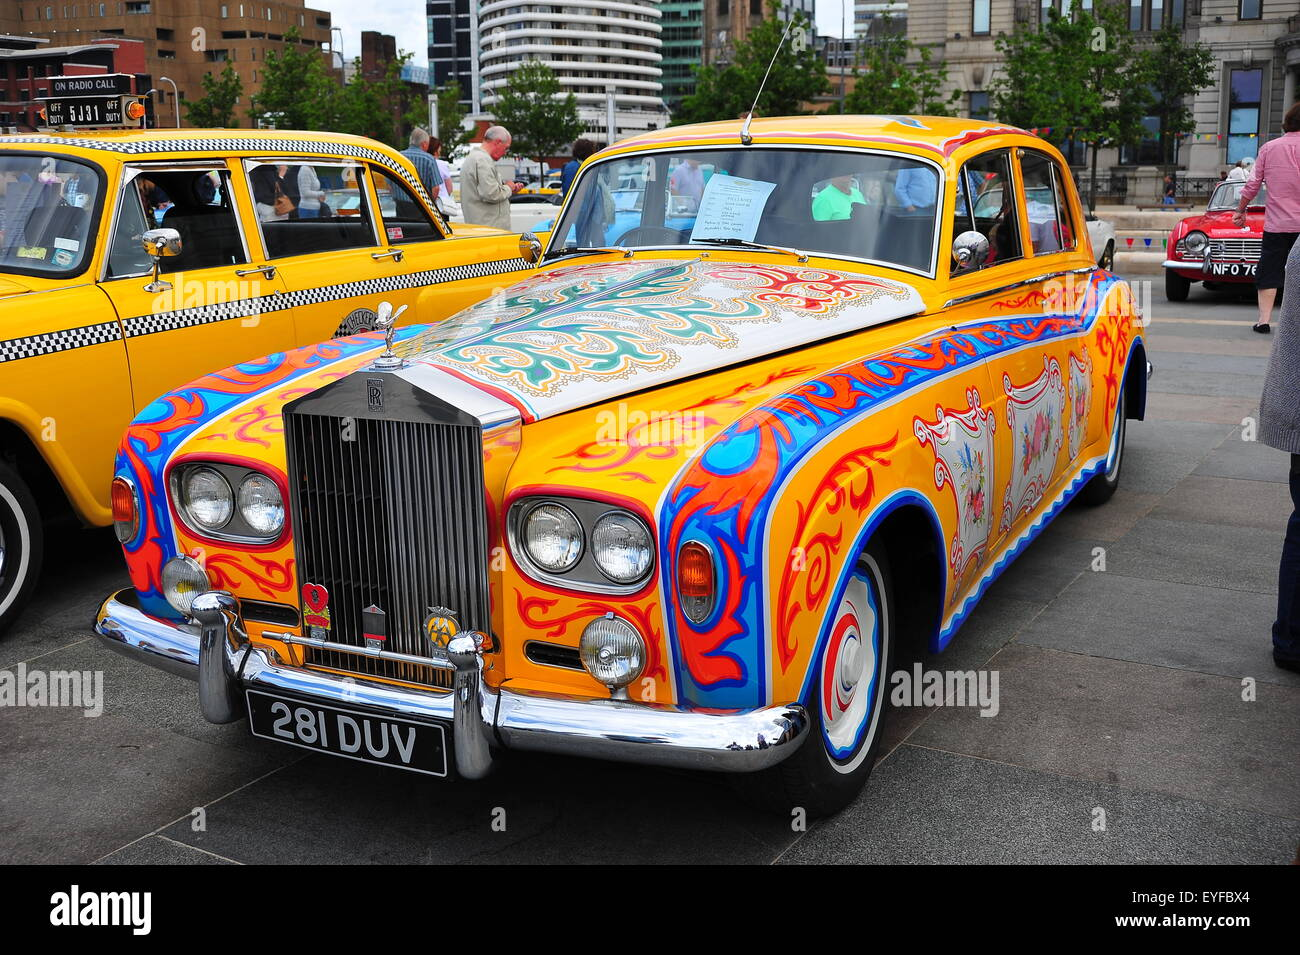 Rolls Royce with psychedelic paint scheme on show at Liverpool's Pier Head. - Stock Image